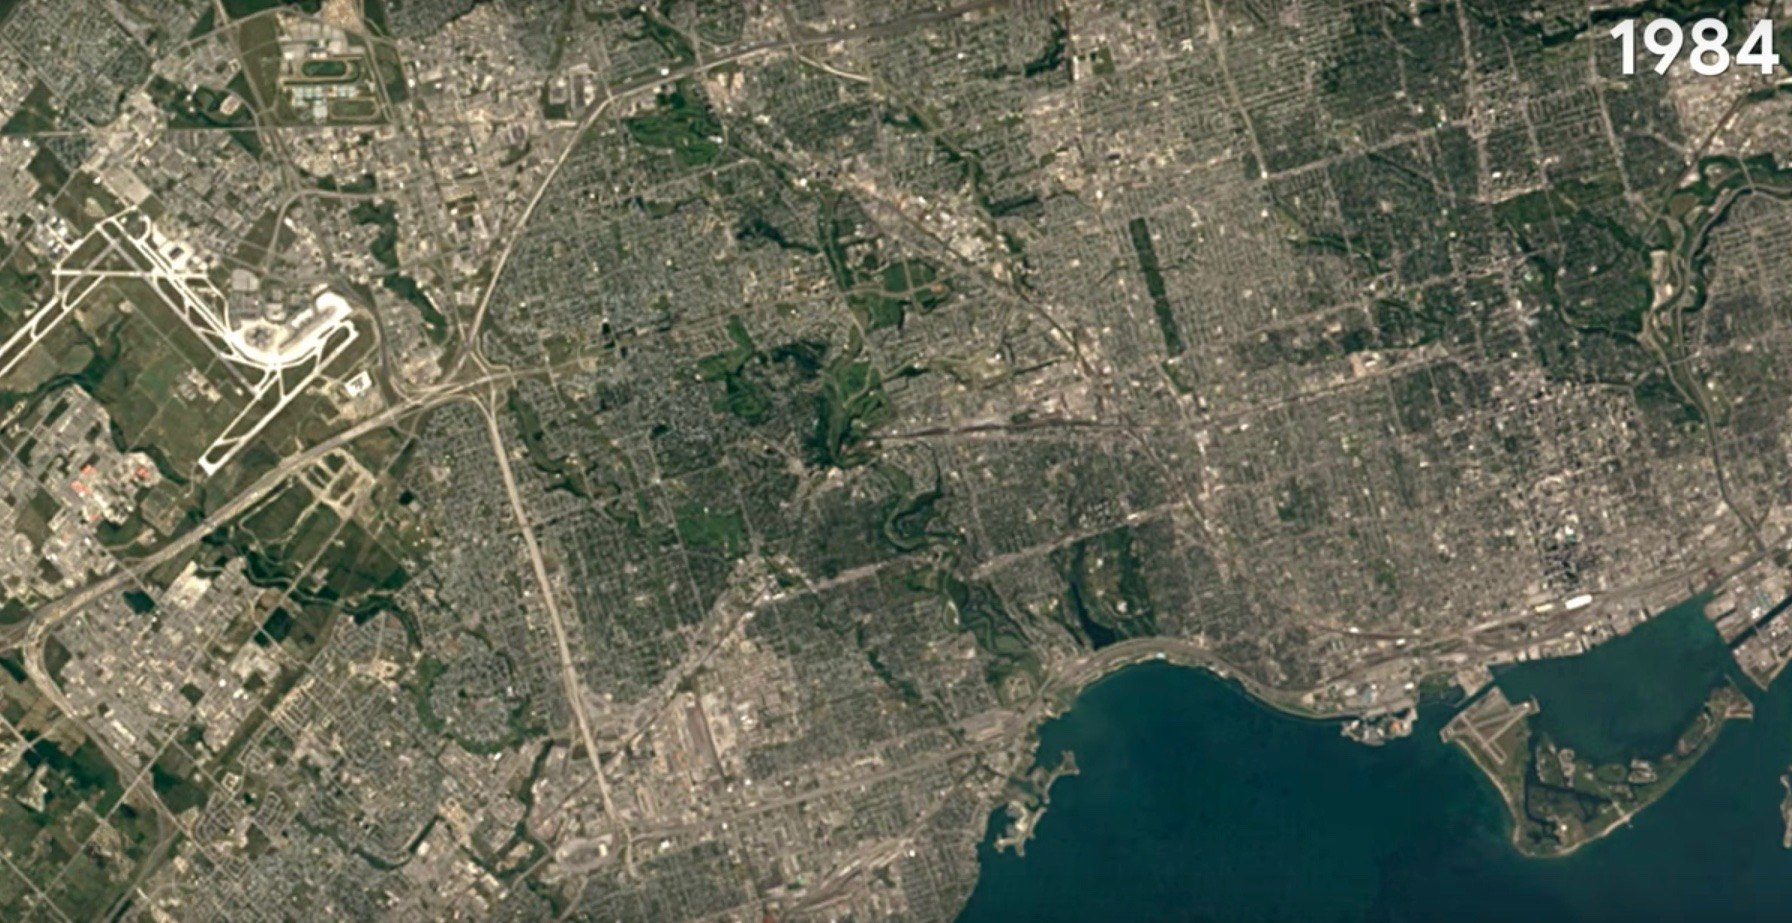 Google Earth releases timelapse of Toronto over the last 35 years